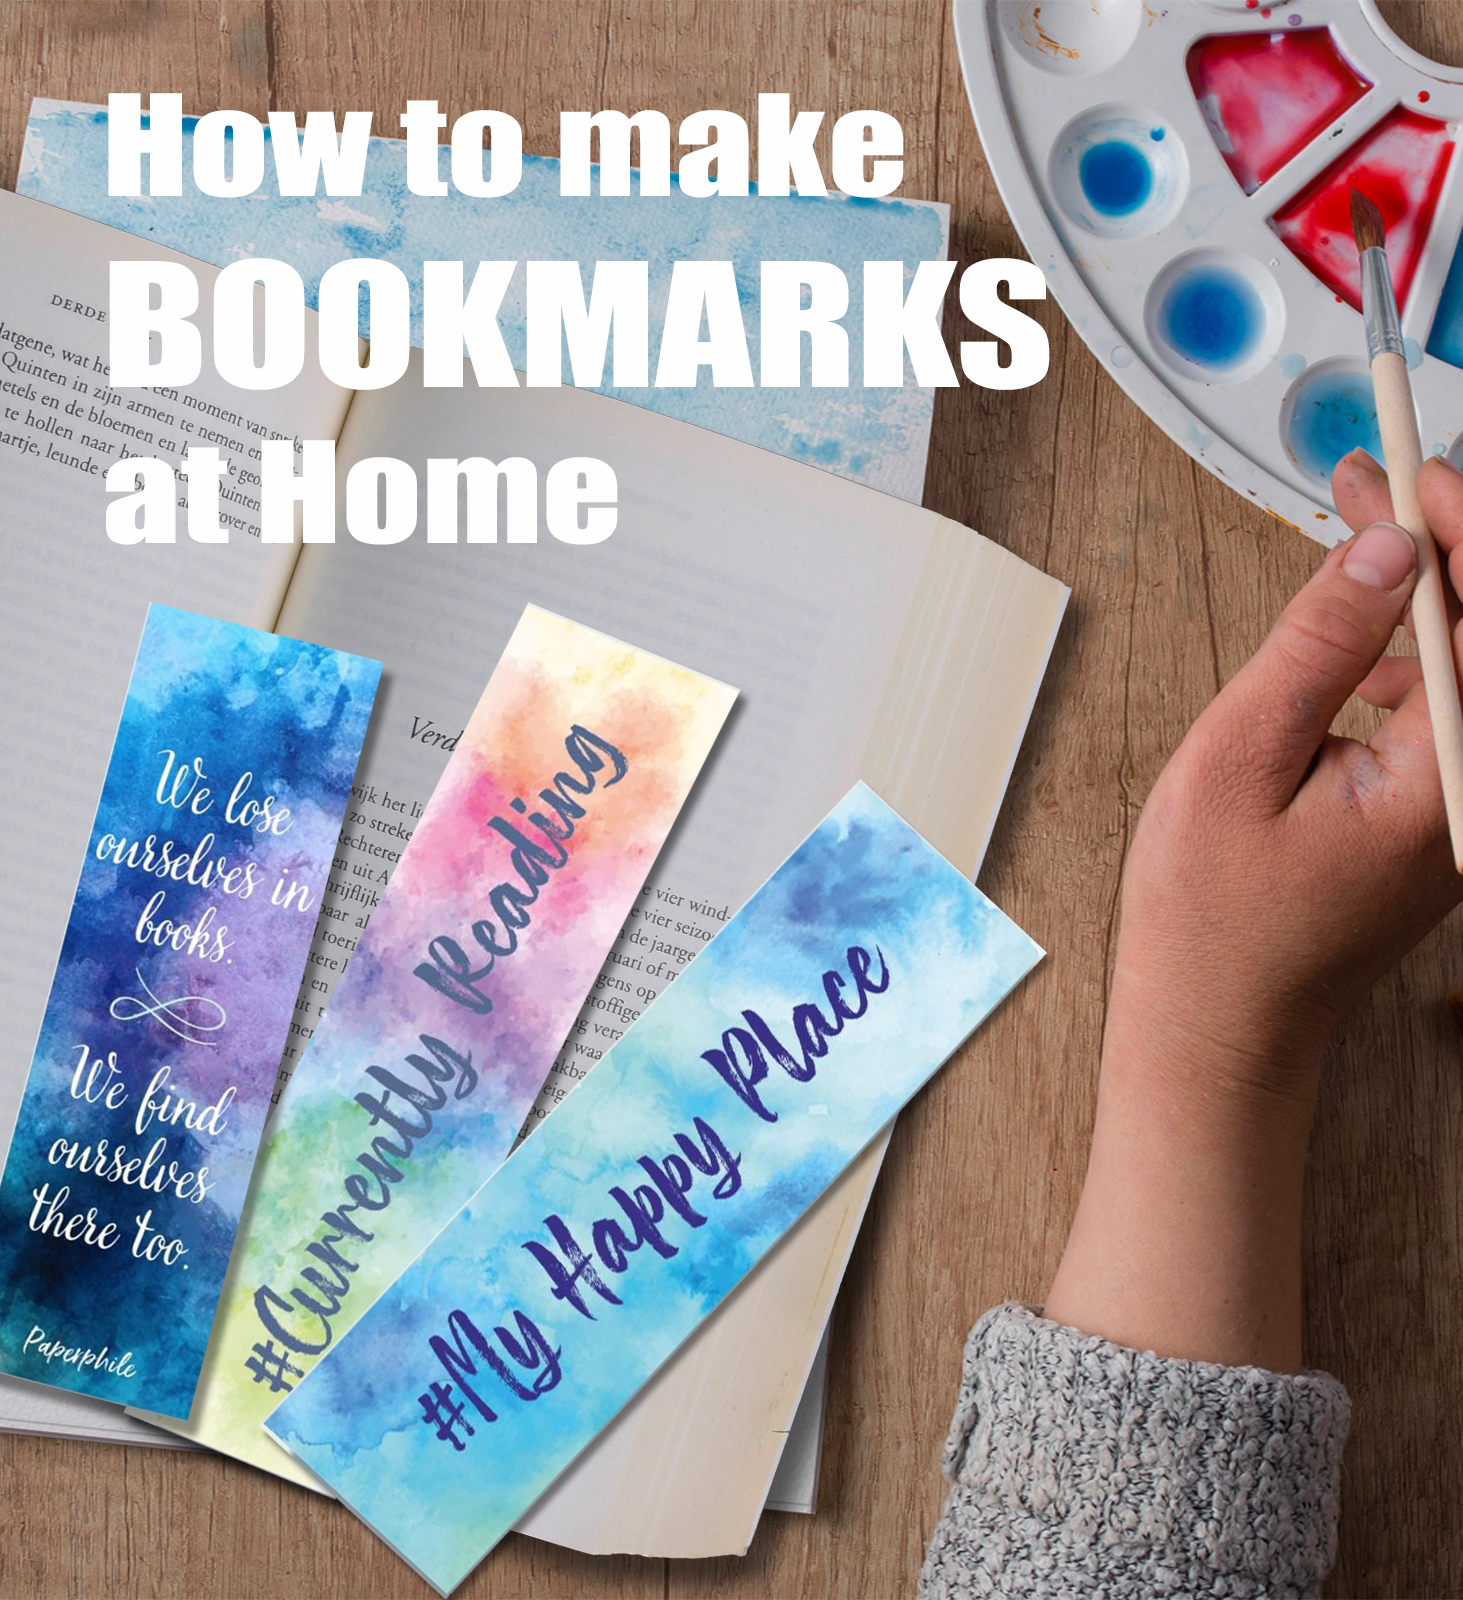 You are currently viewing How to Make Bookmarks at Home